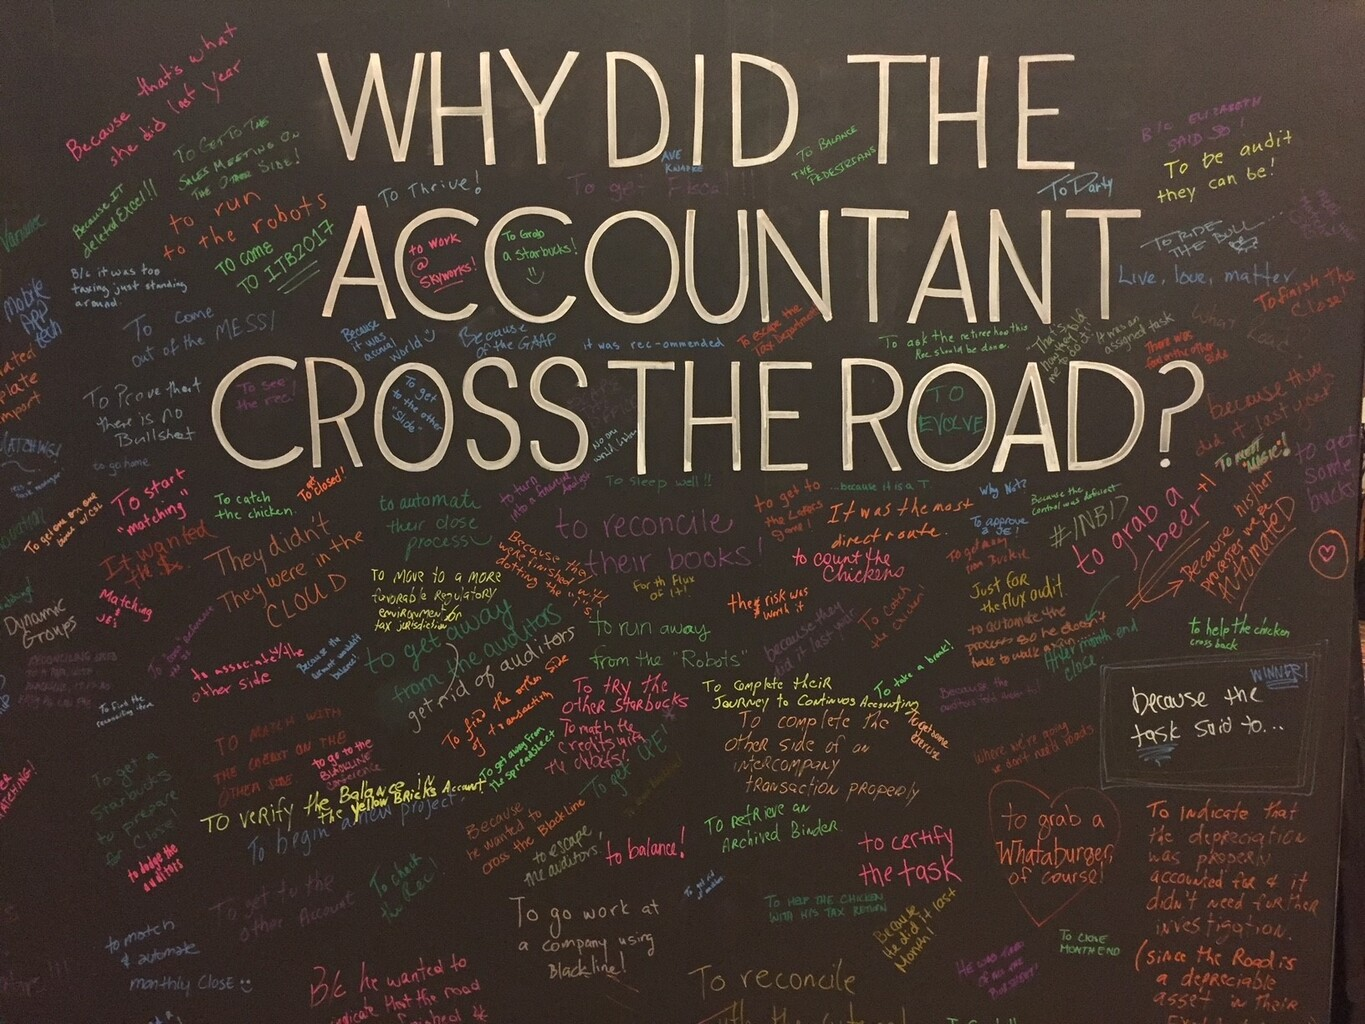 Why-did-the-accountant-cross-the-road.jpg